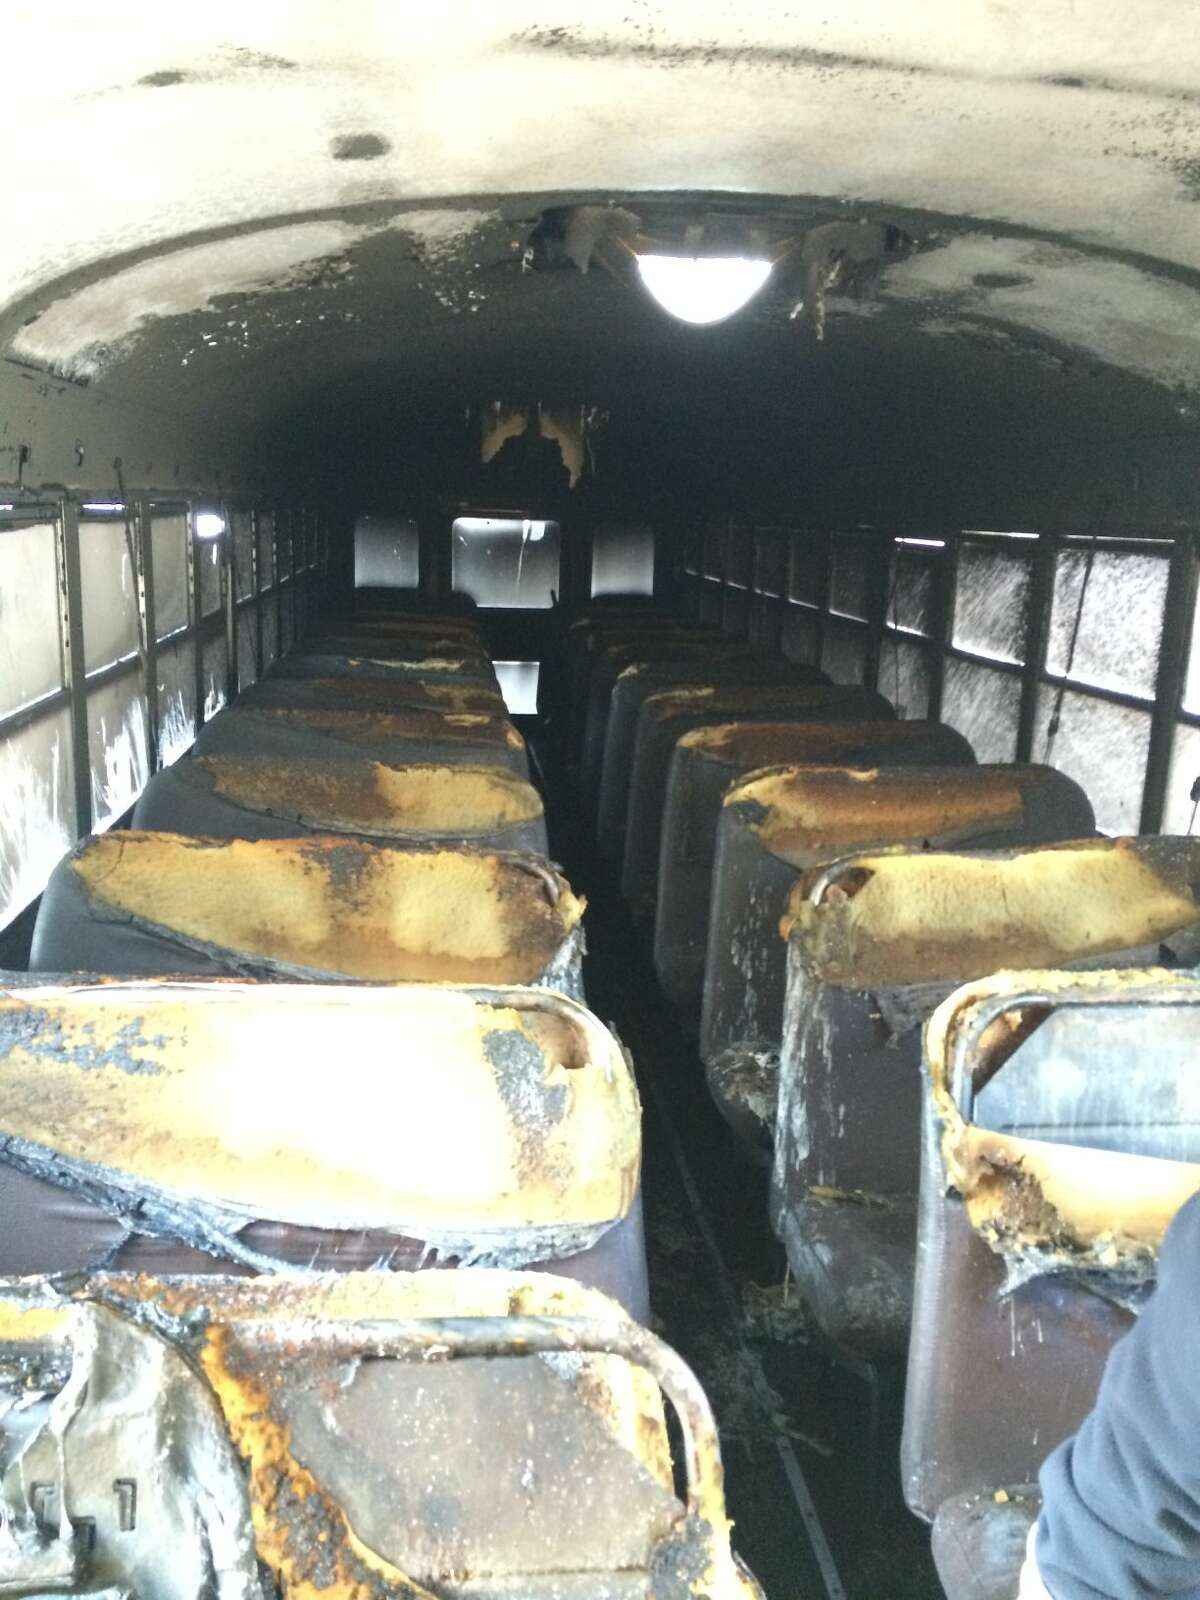 Contributed photo by Norwalk Fire Department Bus catches fire in South Norwalk. All passengers evacuated safely.